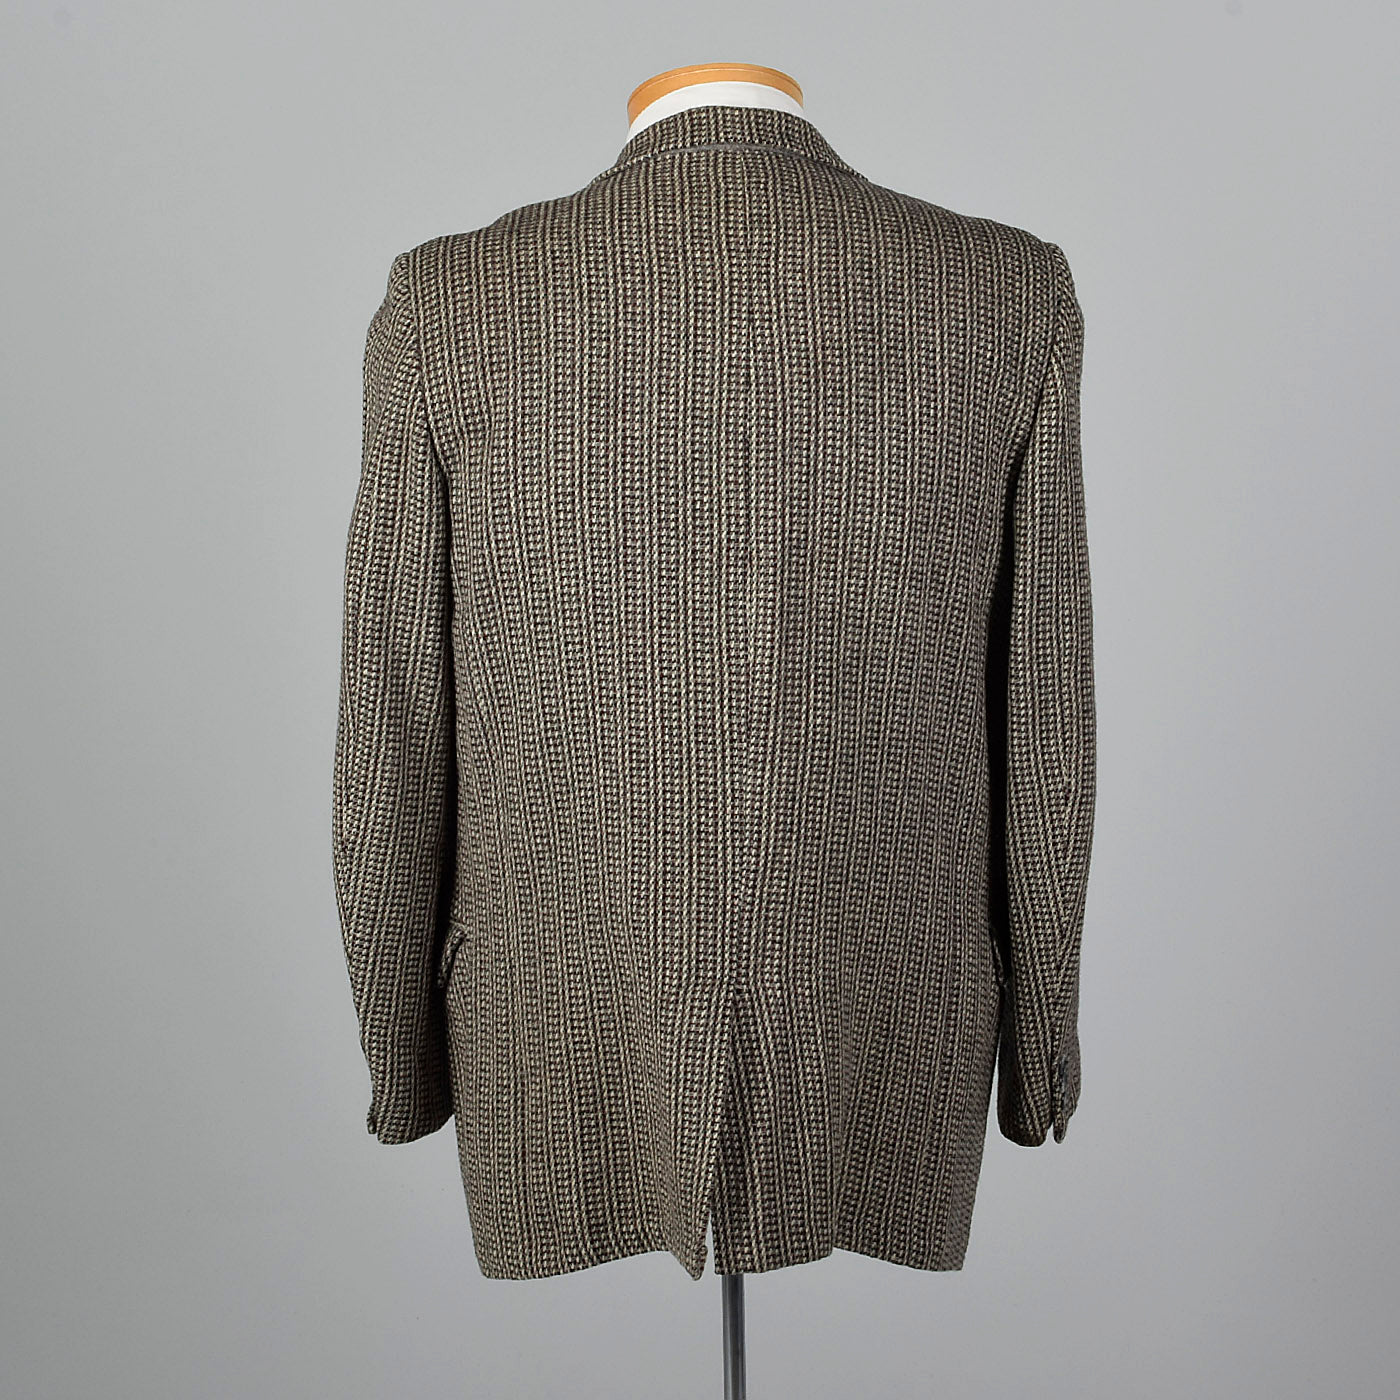 1950s Black and White Tweed Jacket with Red Stripe